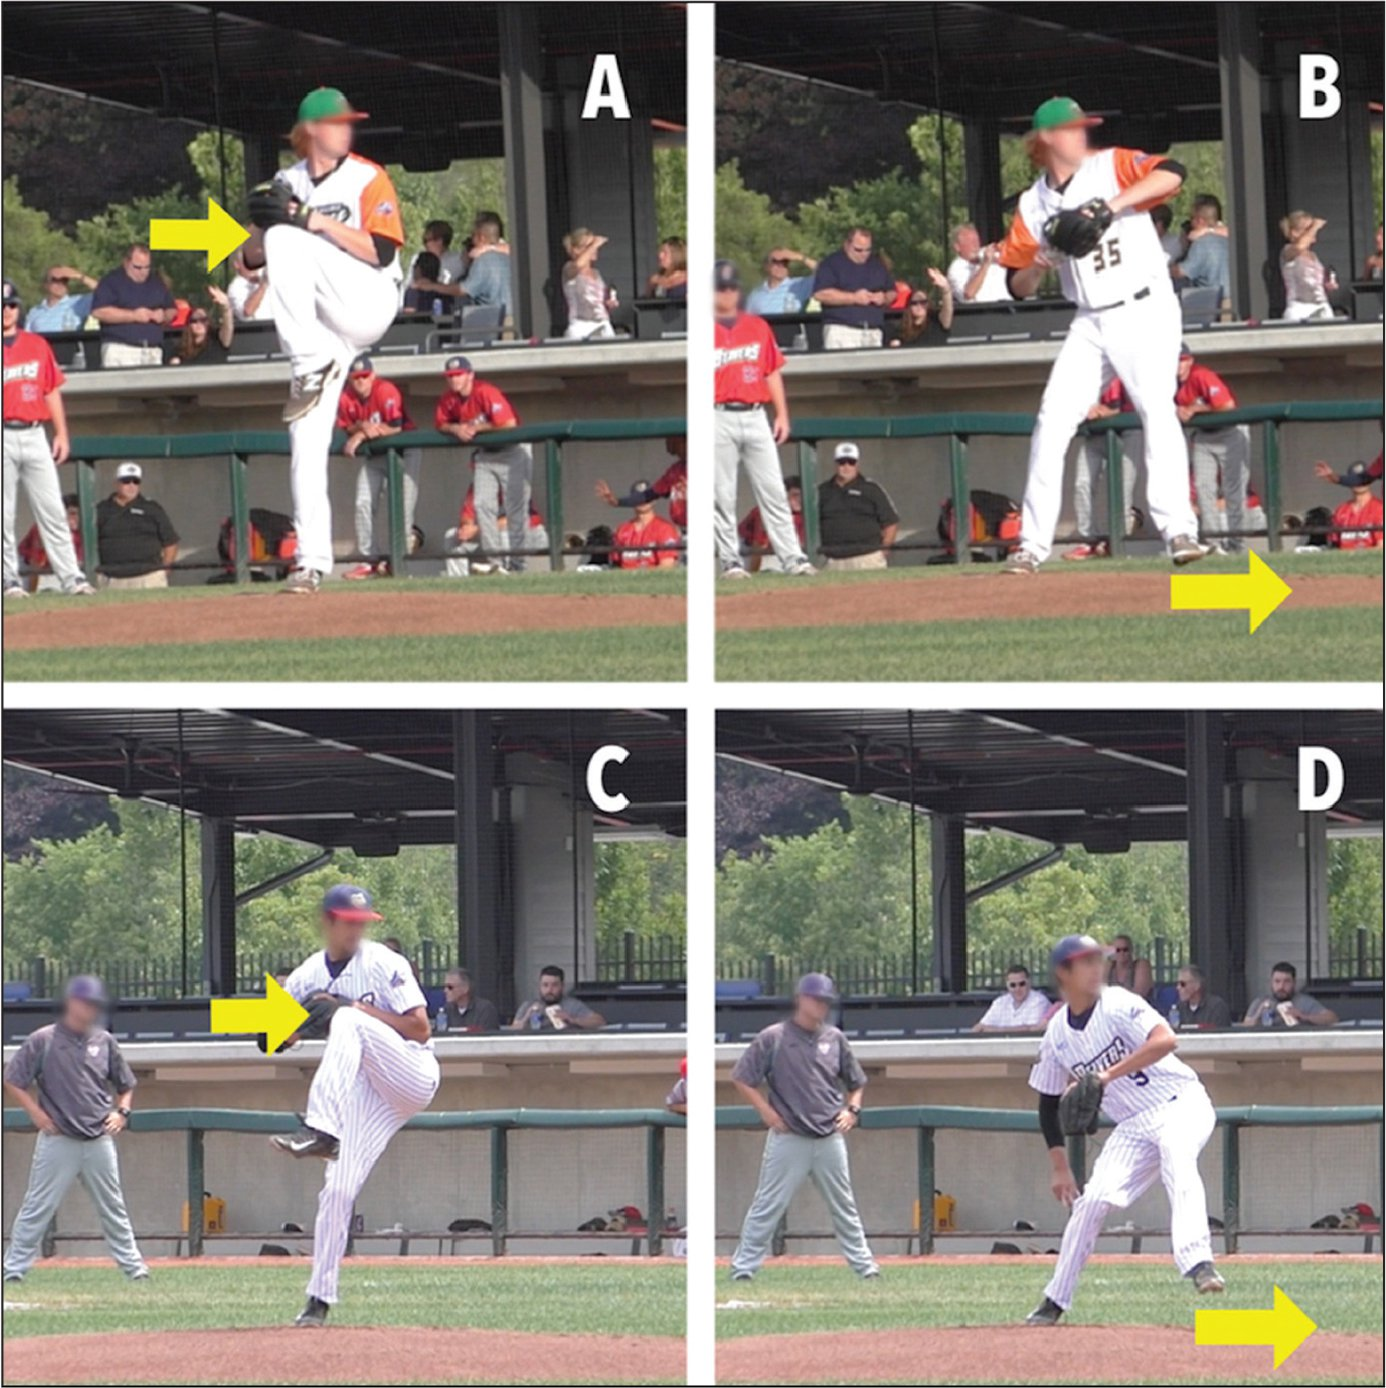 Representative example of components assessed in the mass and momentum category. A pitcher in the lower scoring position with a minimal angle showing minimal forward push-off from the drive extremity (A, B). A pitcher in the higher scoring position with the drive leg at a larger angle indicating that the lower body and pelvis are moving toward the target (C, D). Arrows represent the points at which these positions are assessed.